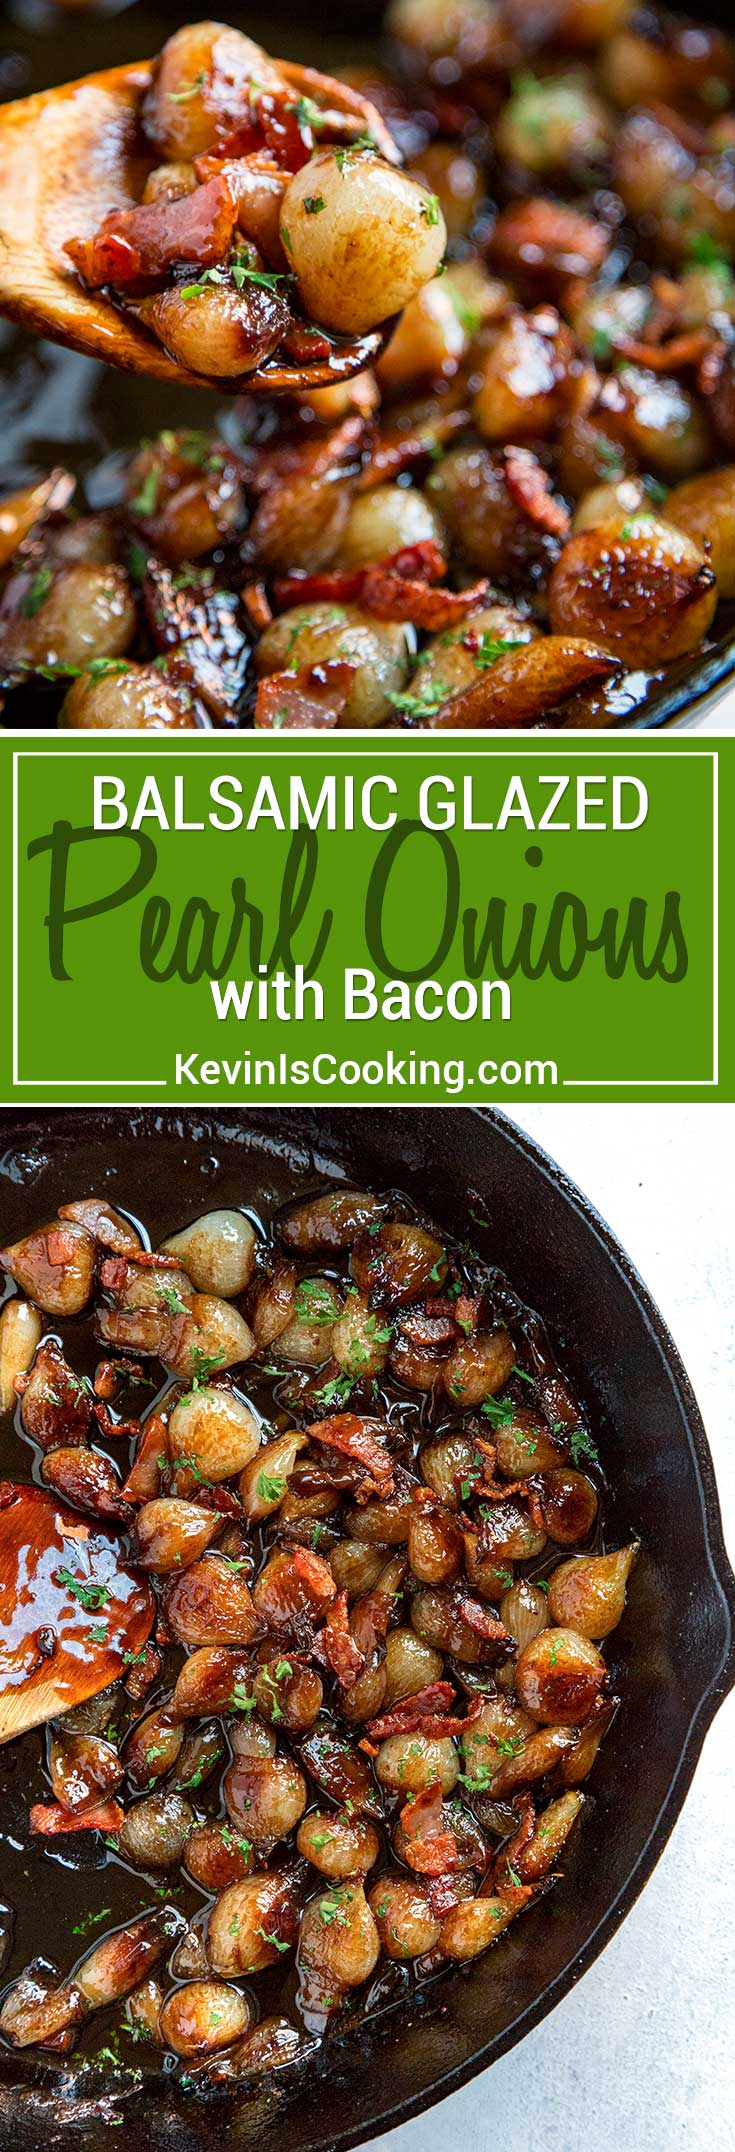 These Balsamic Glazed Pearl Onions with Bacon are perfect for any dinner table as a side dish or spooned over roasted or grilled meat. The caramelization!